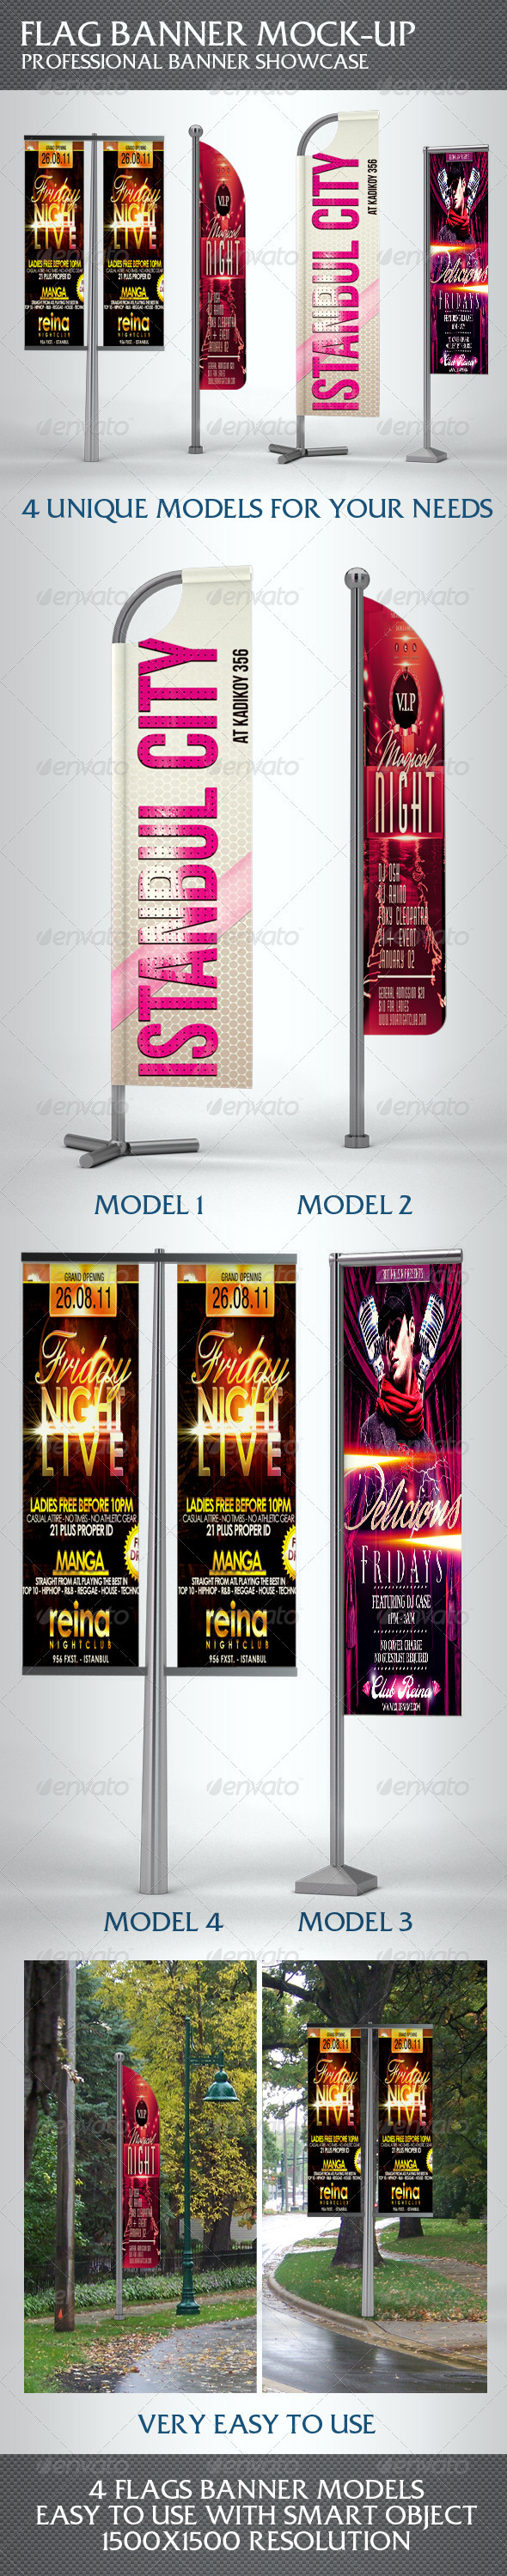 Professional Flag Banner Mock-up - Signage Print